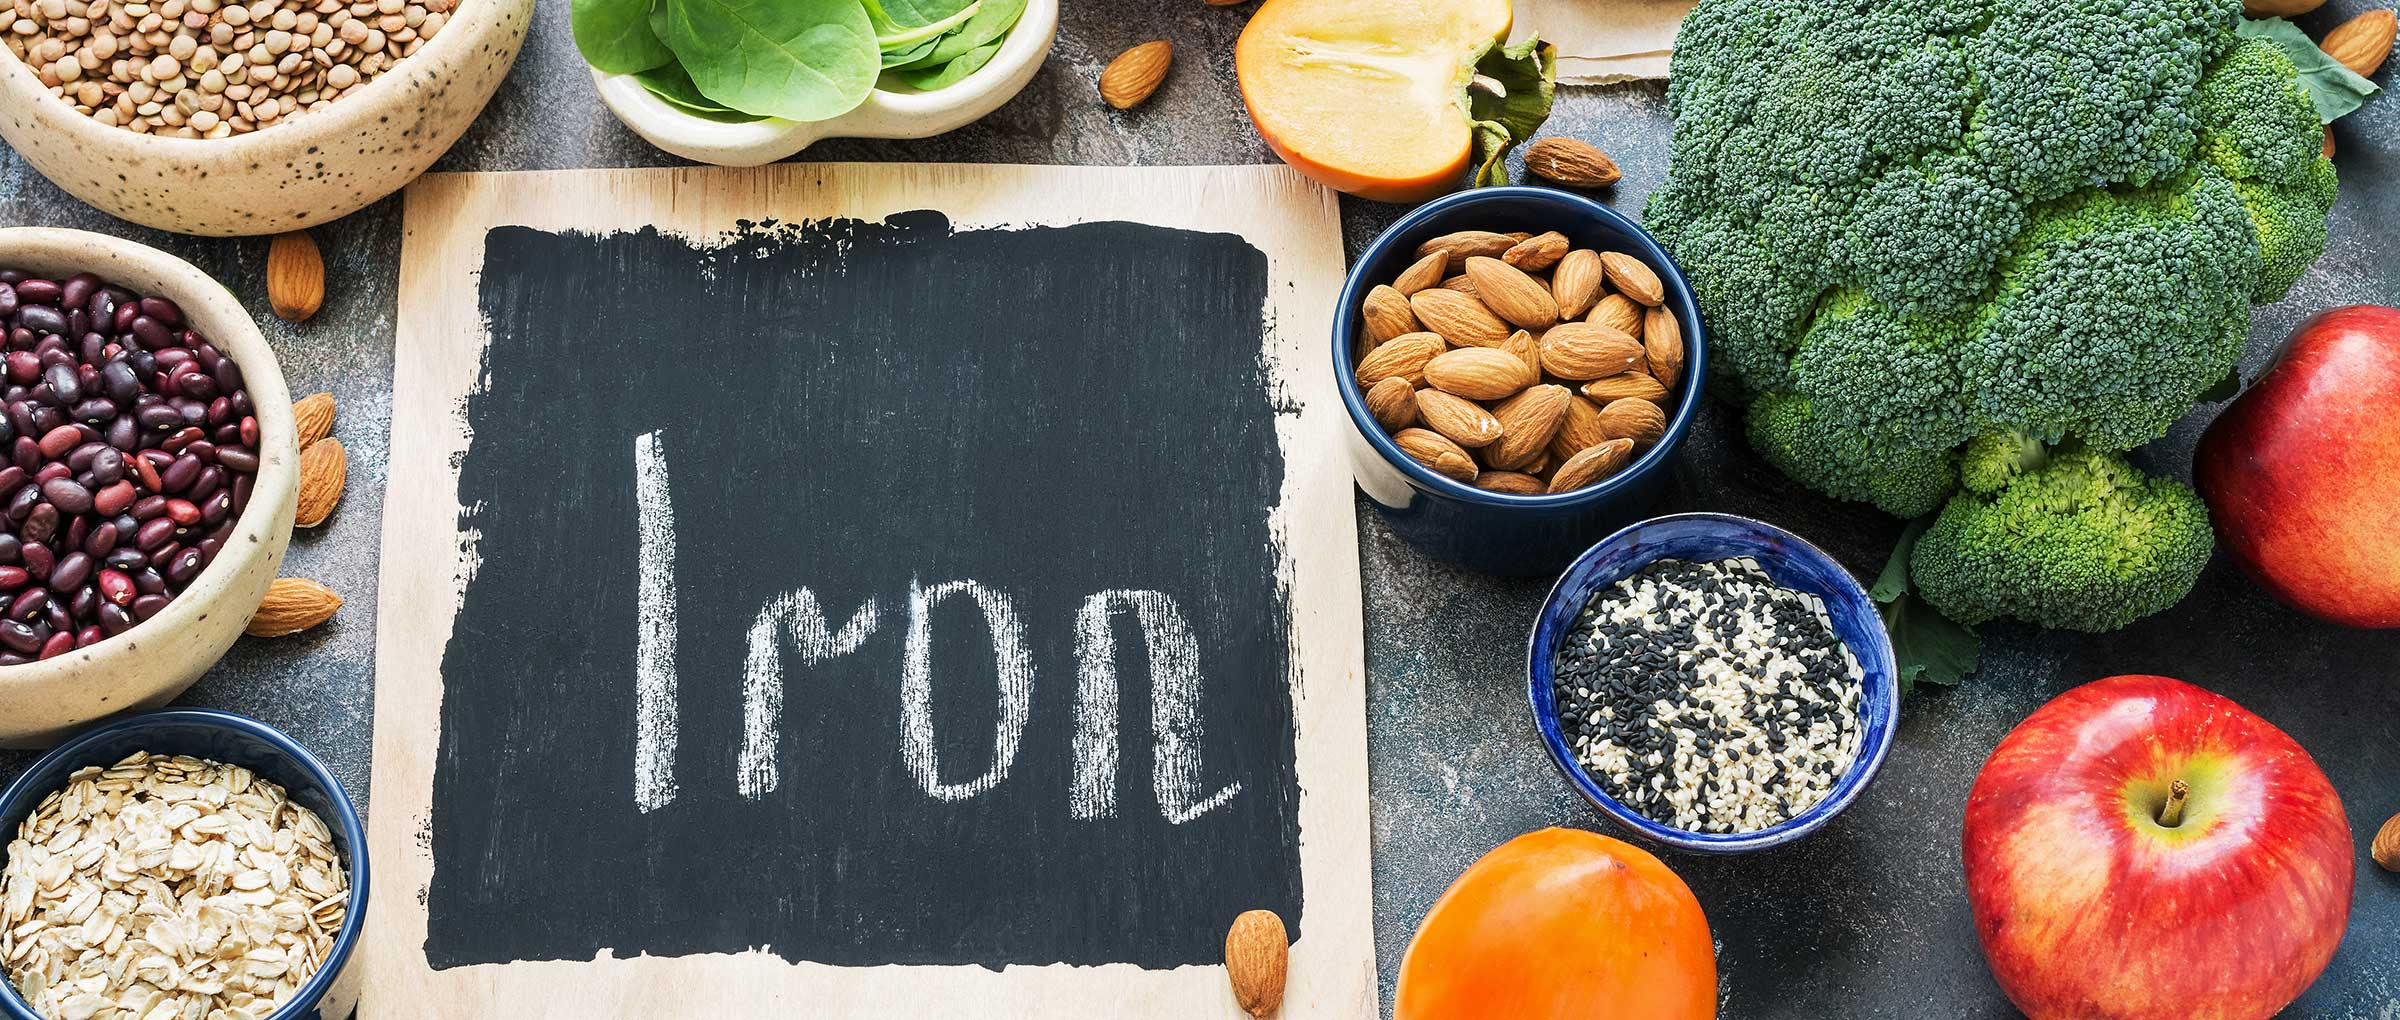 Iron-rich foods to relieve menstrual pain